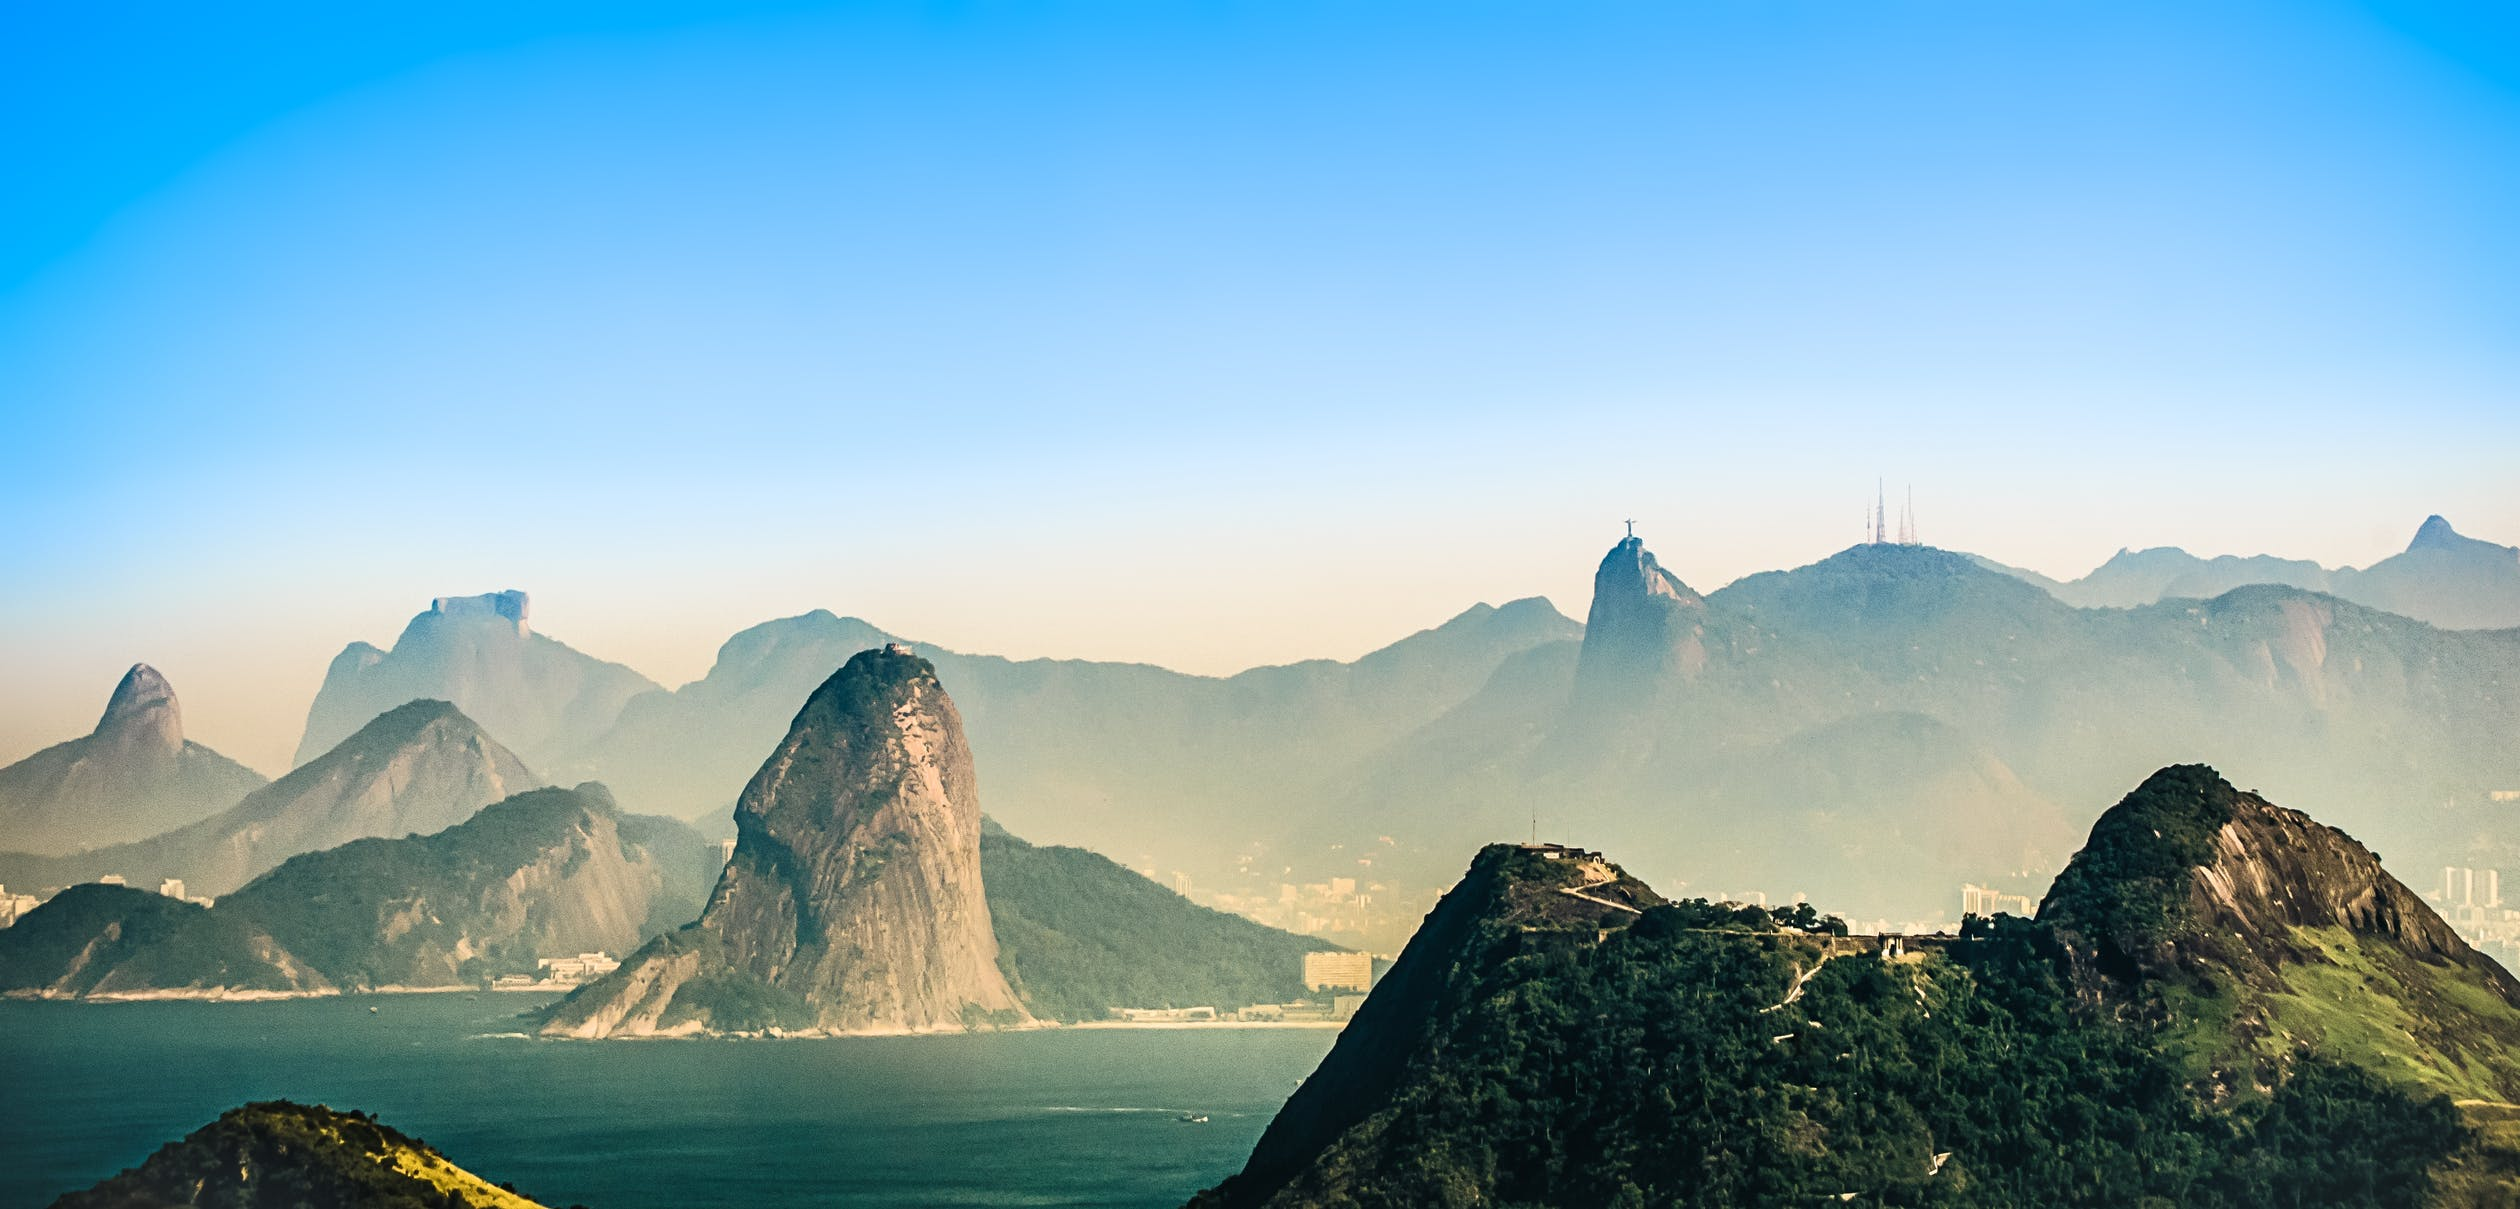 Rio de Janeiro from a distance, the city many know before moving to Brazil.